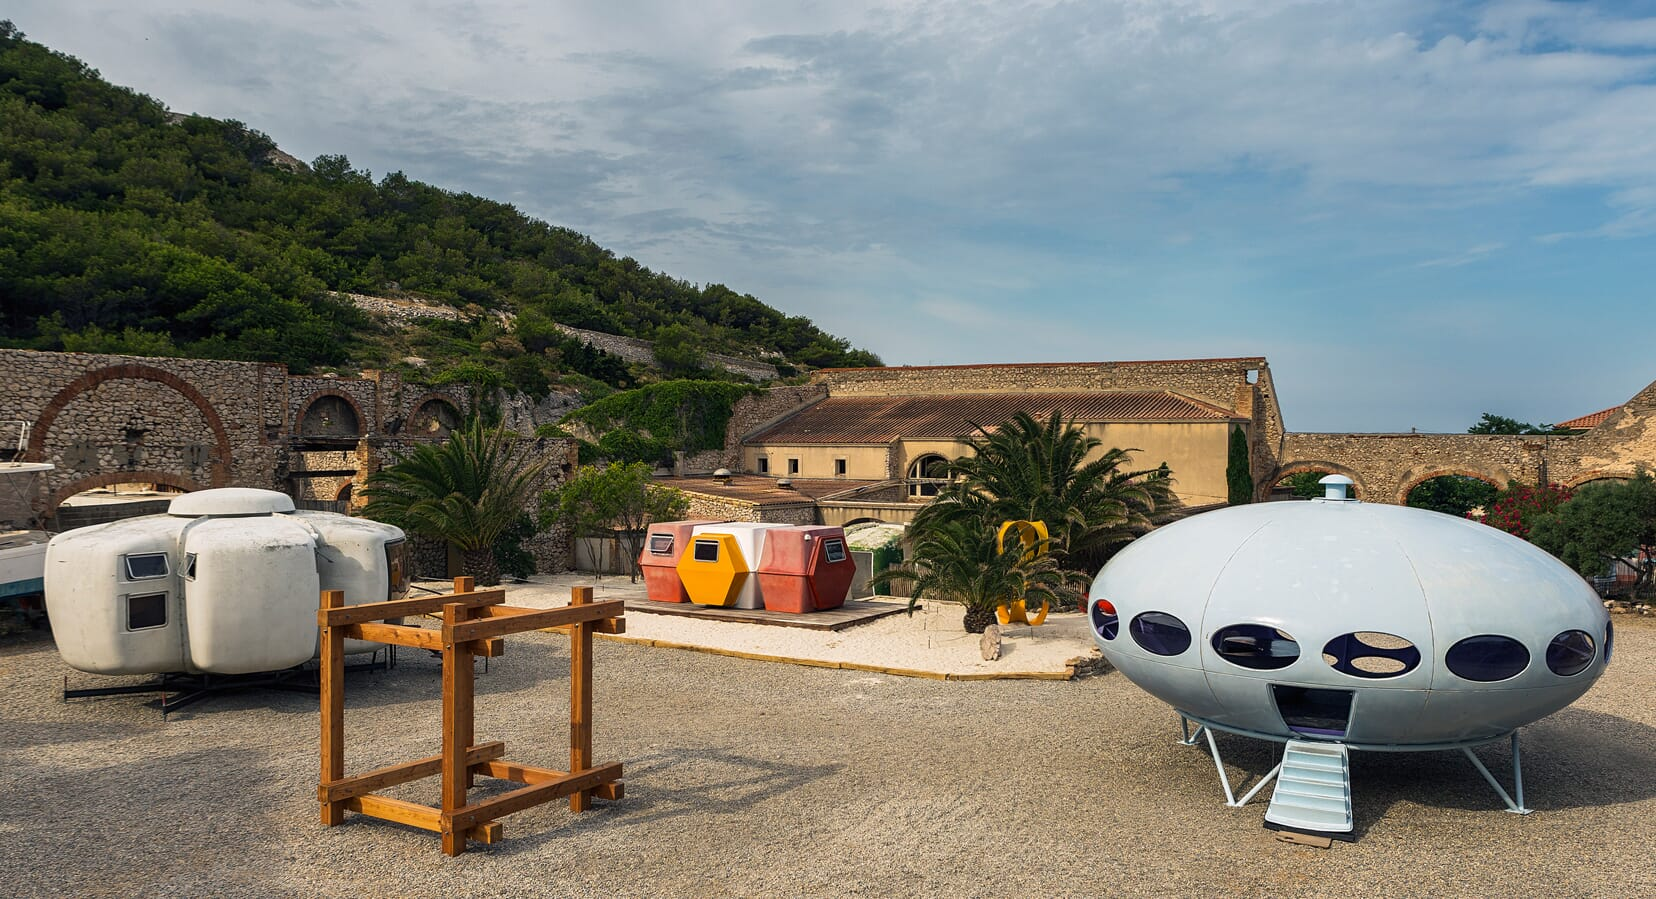 Futuristic Micro-Homes Land in Marseille For 'Utopie Plastic' Exhibition